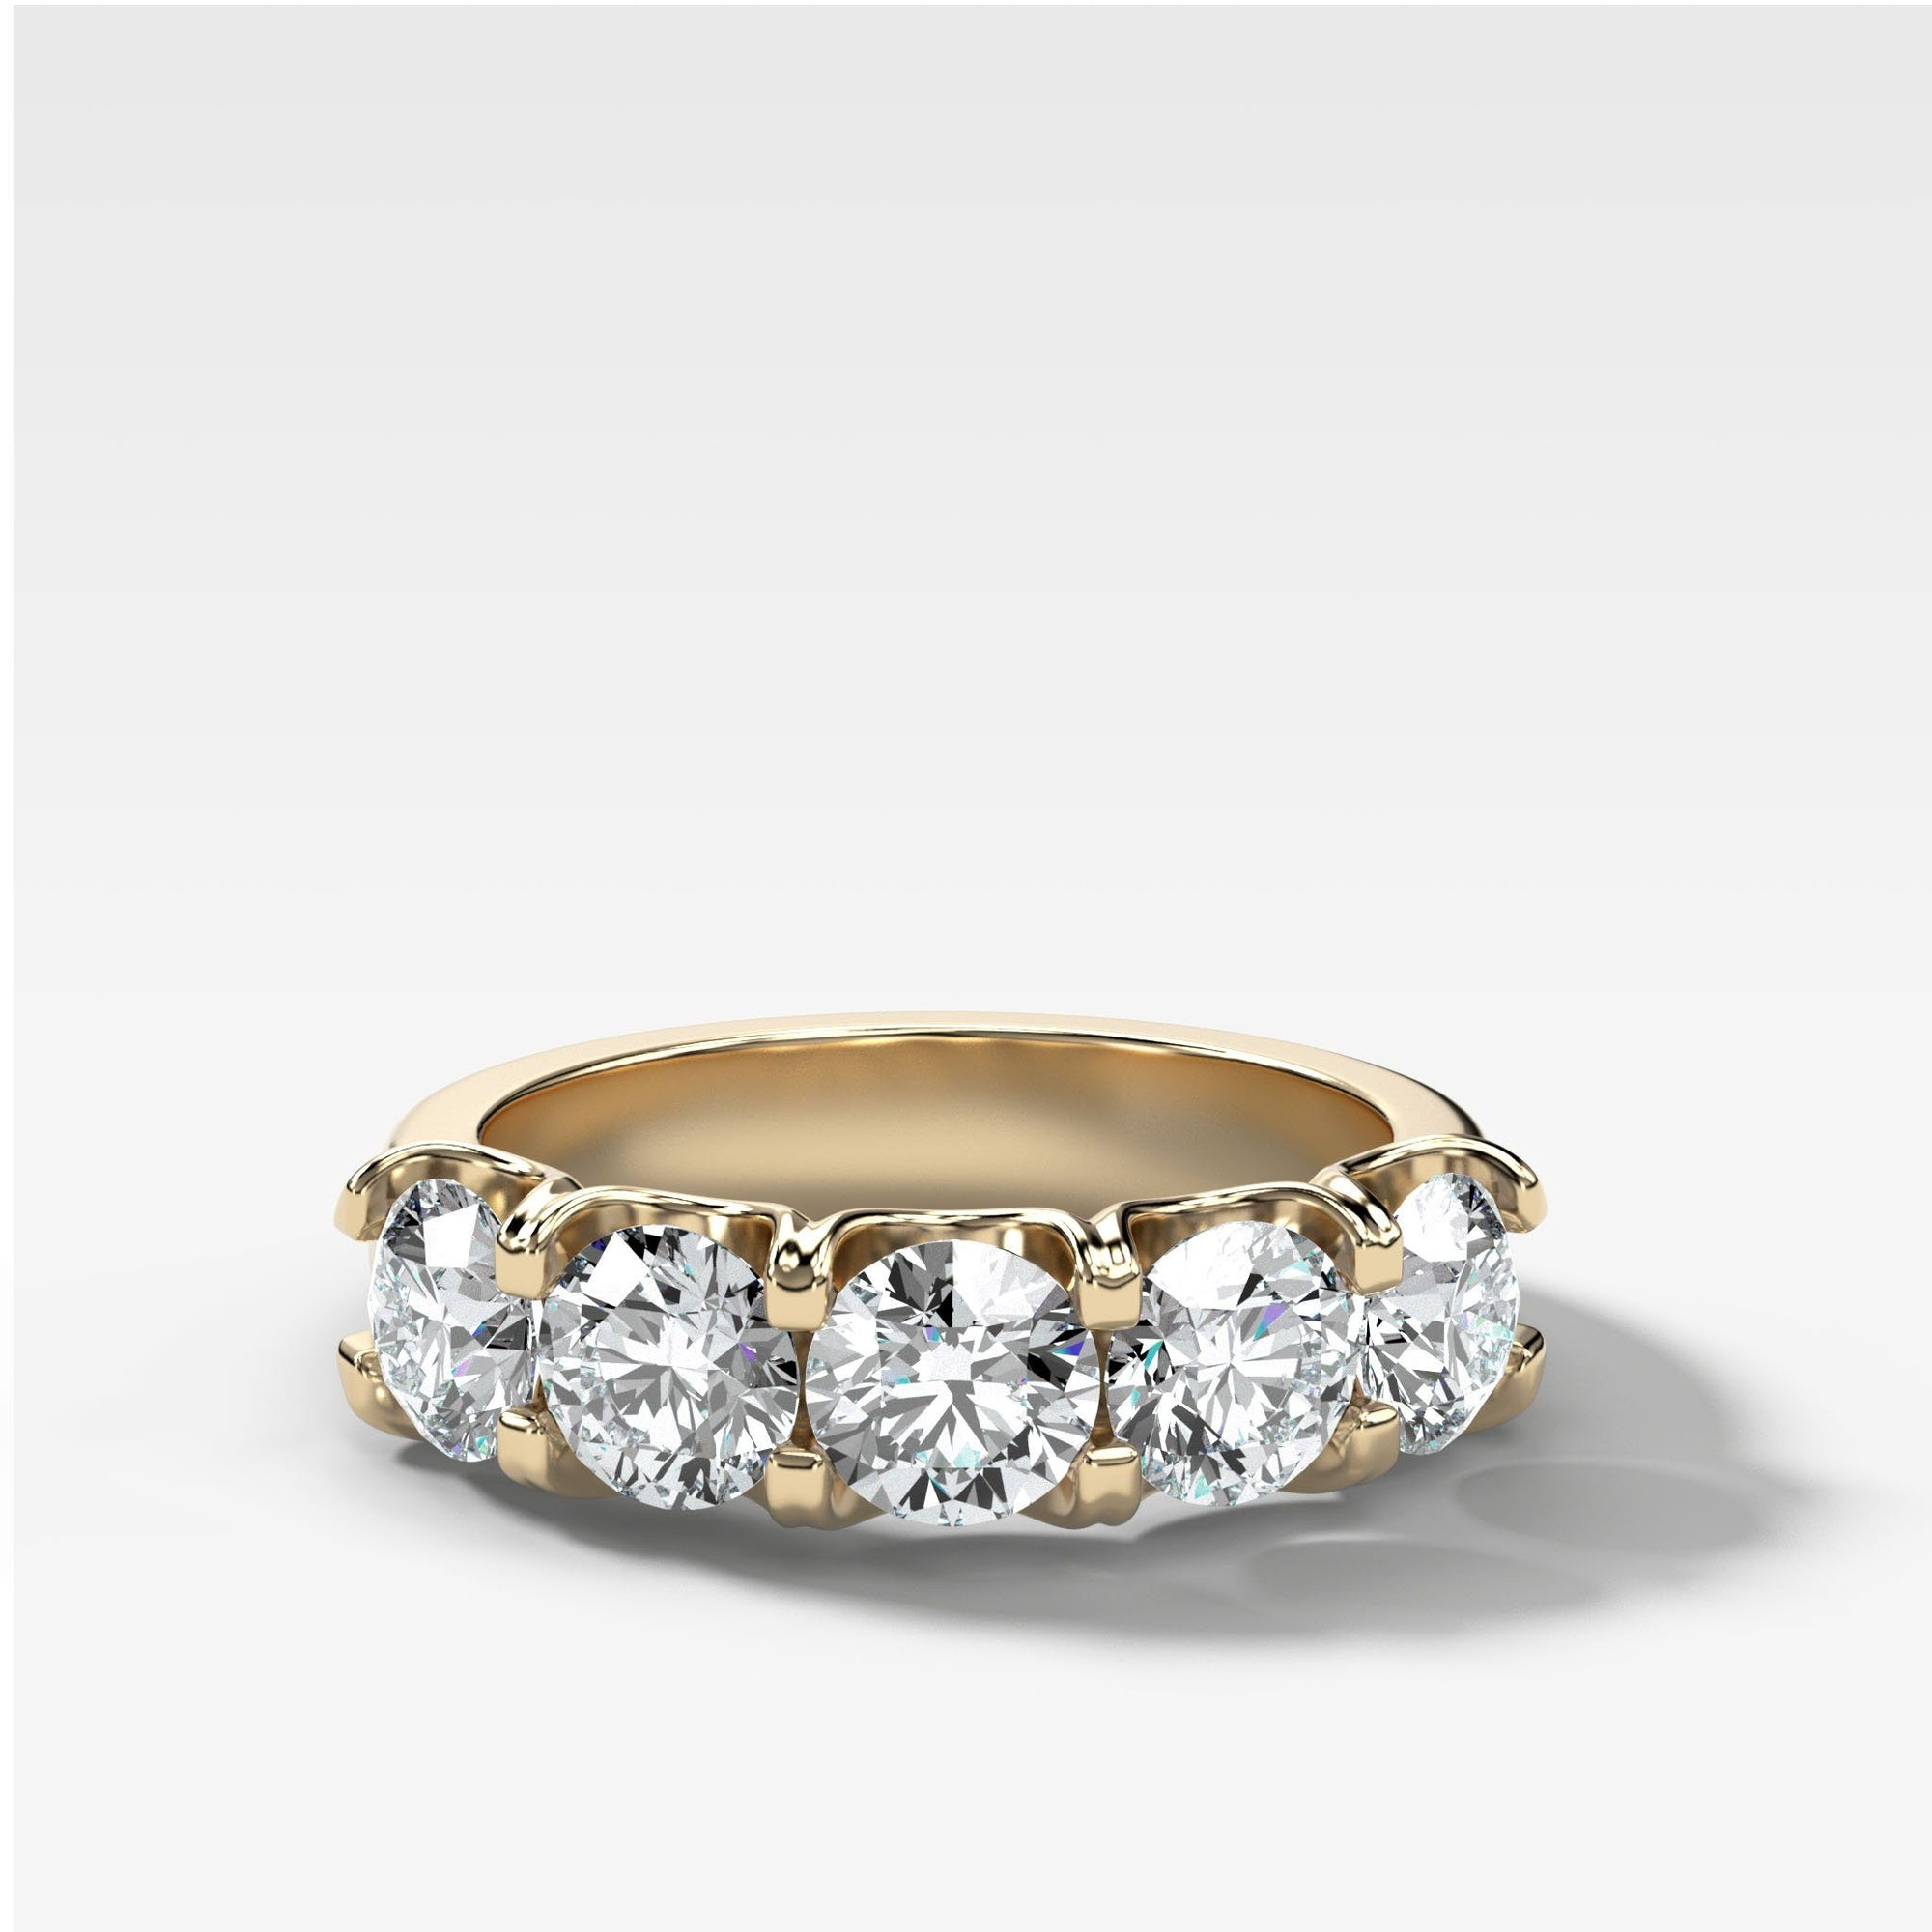 Five Stone Shared Prong Diamond Band With Round Cuts (2.50ctw) In Yellow Gold By Good Stone